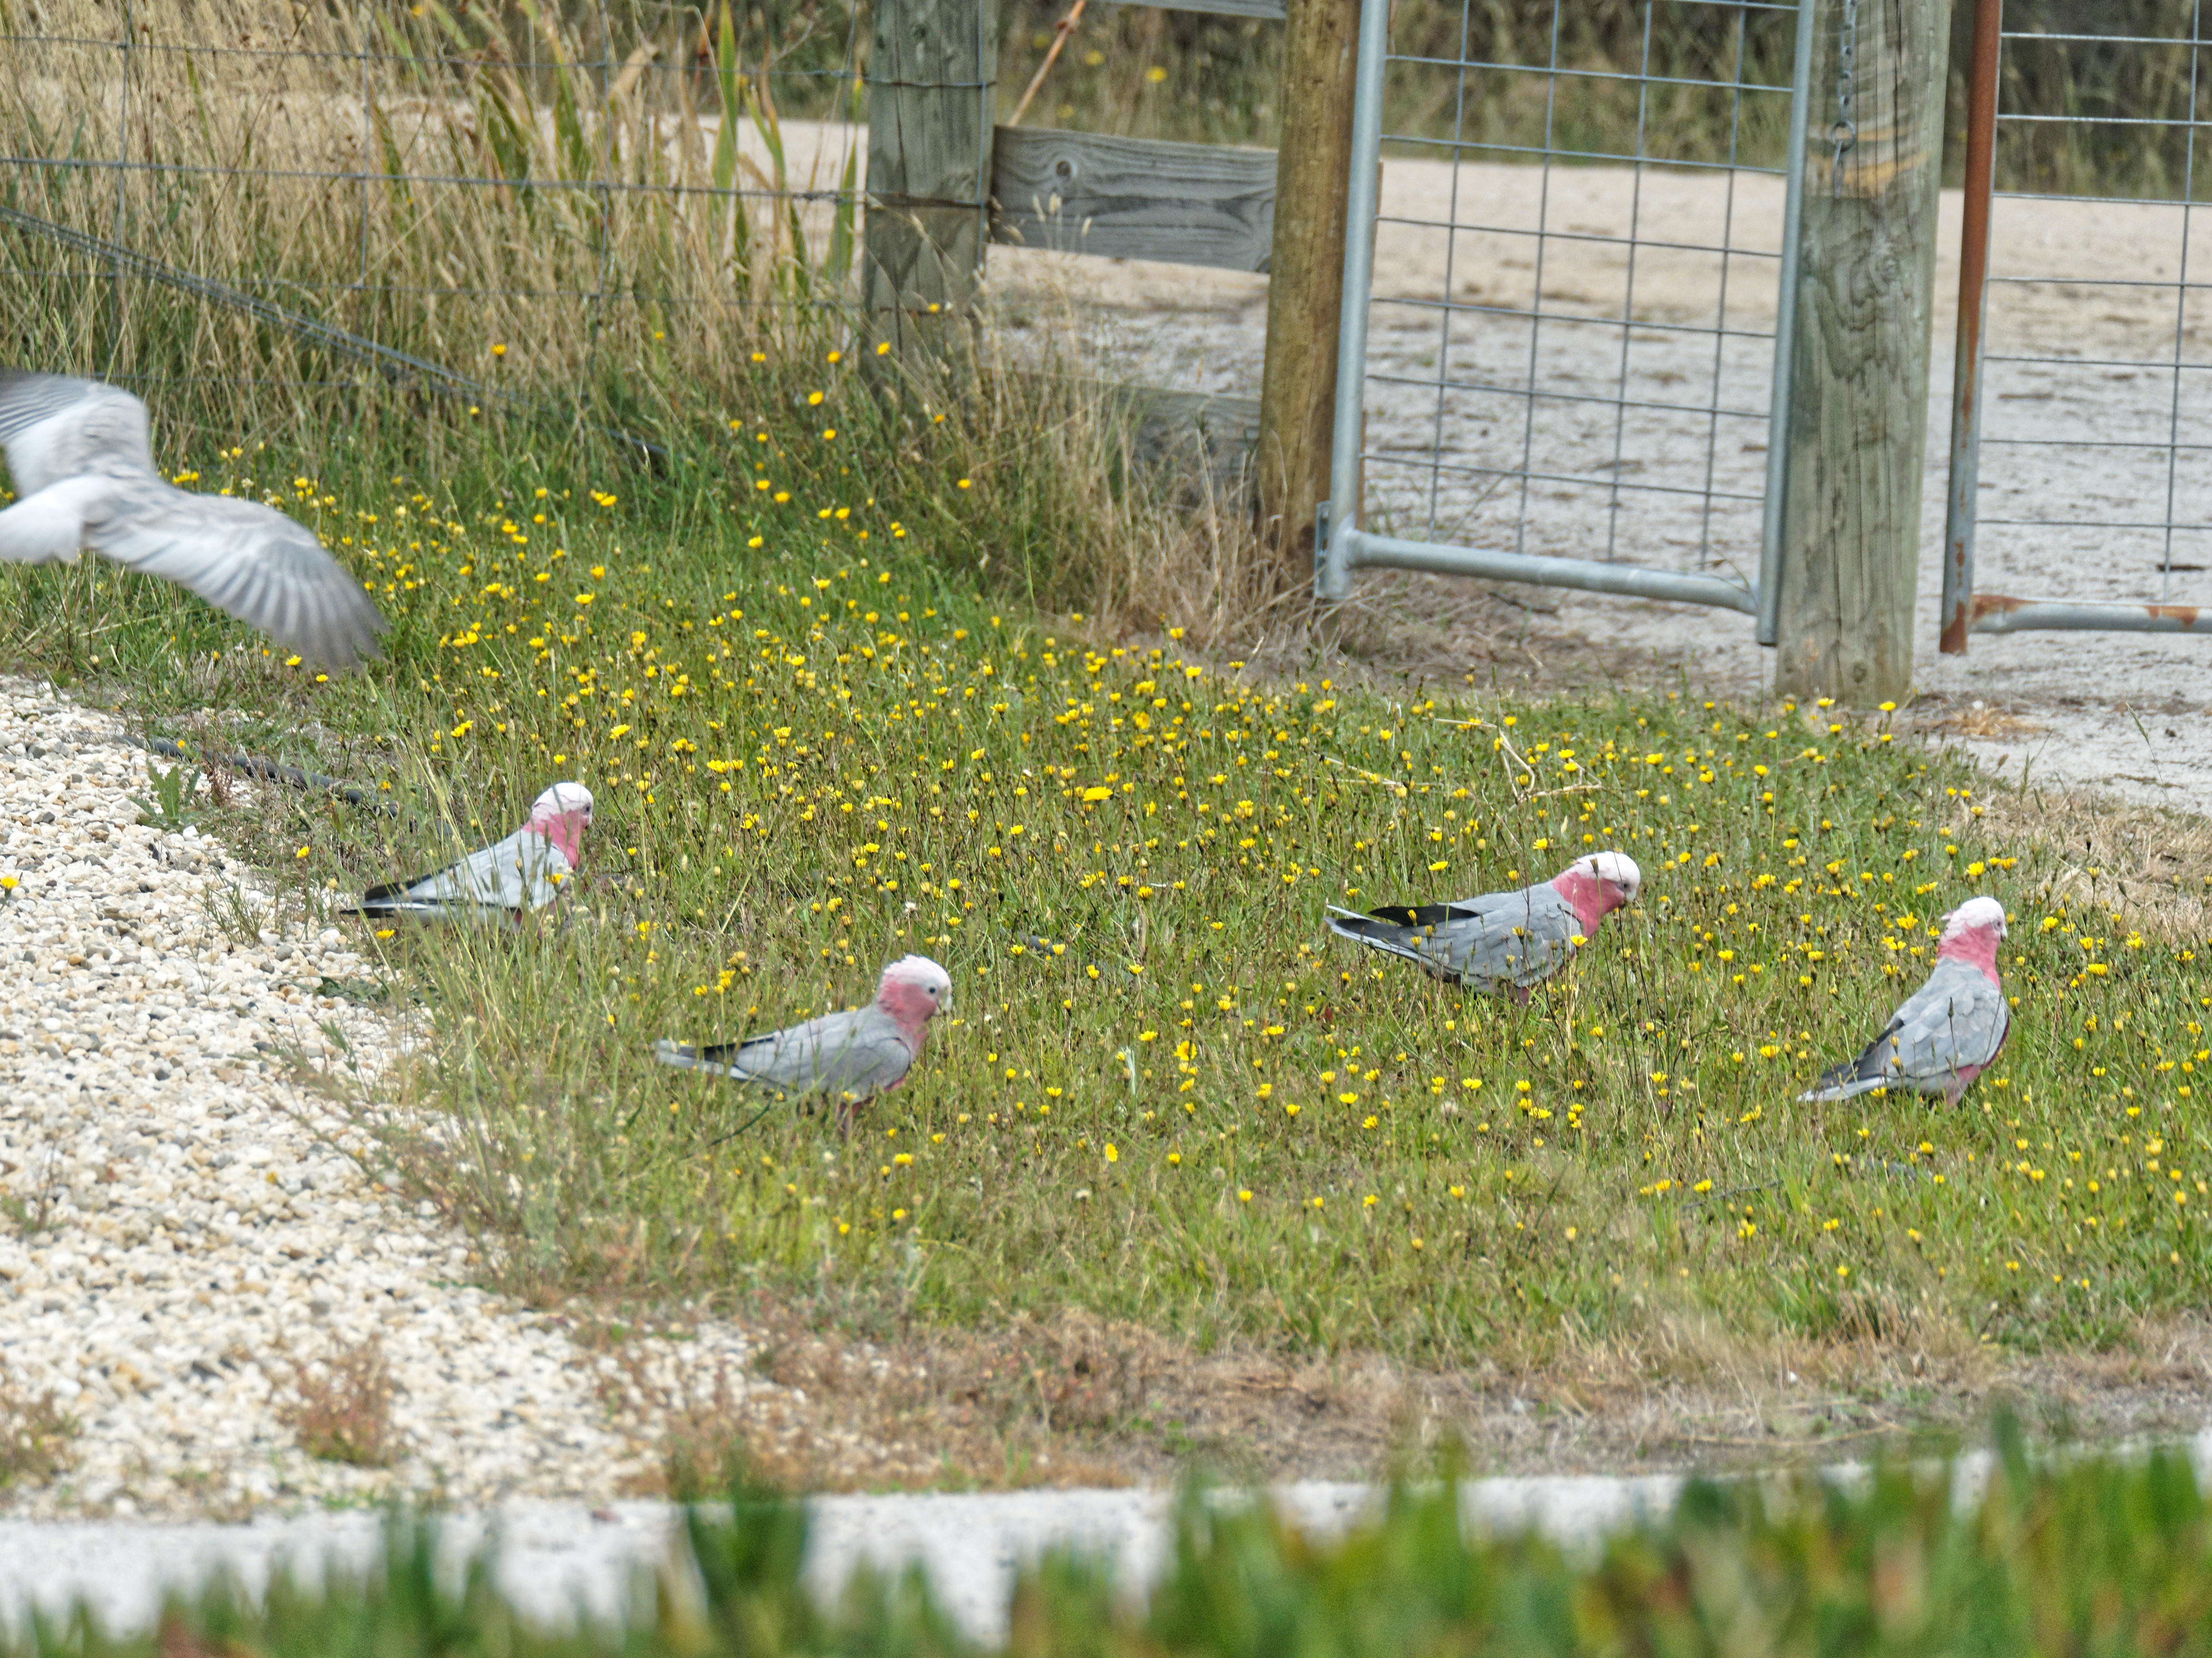 This should be Galahs-2.jpeg.  Is it missing?